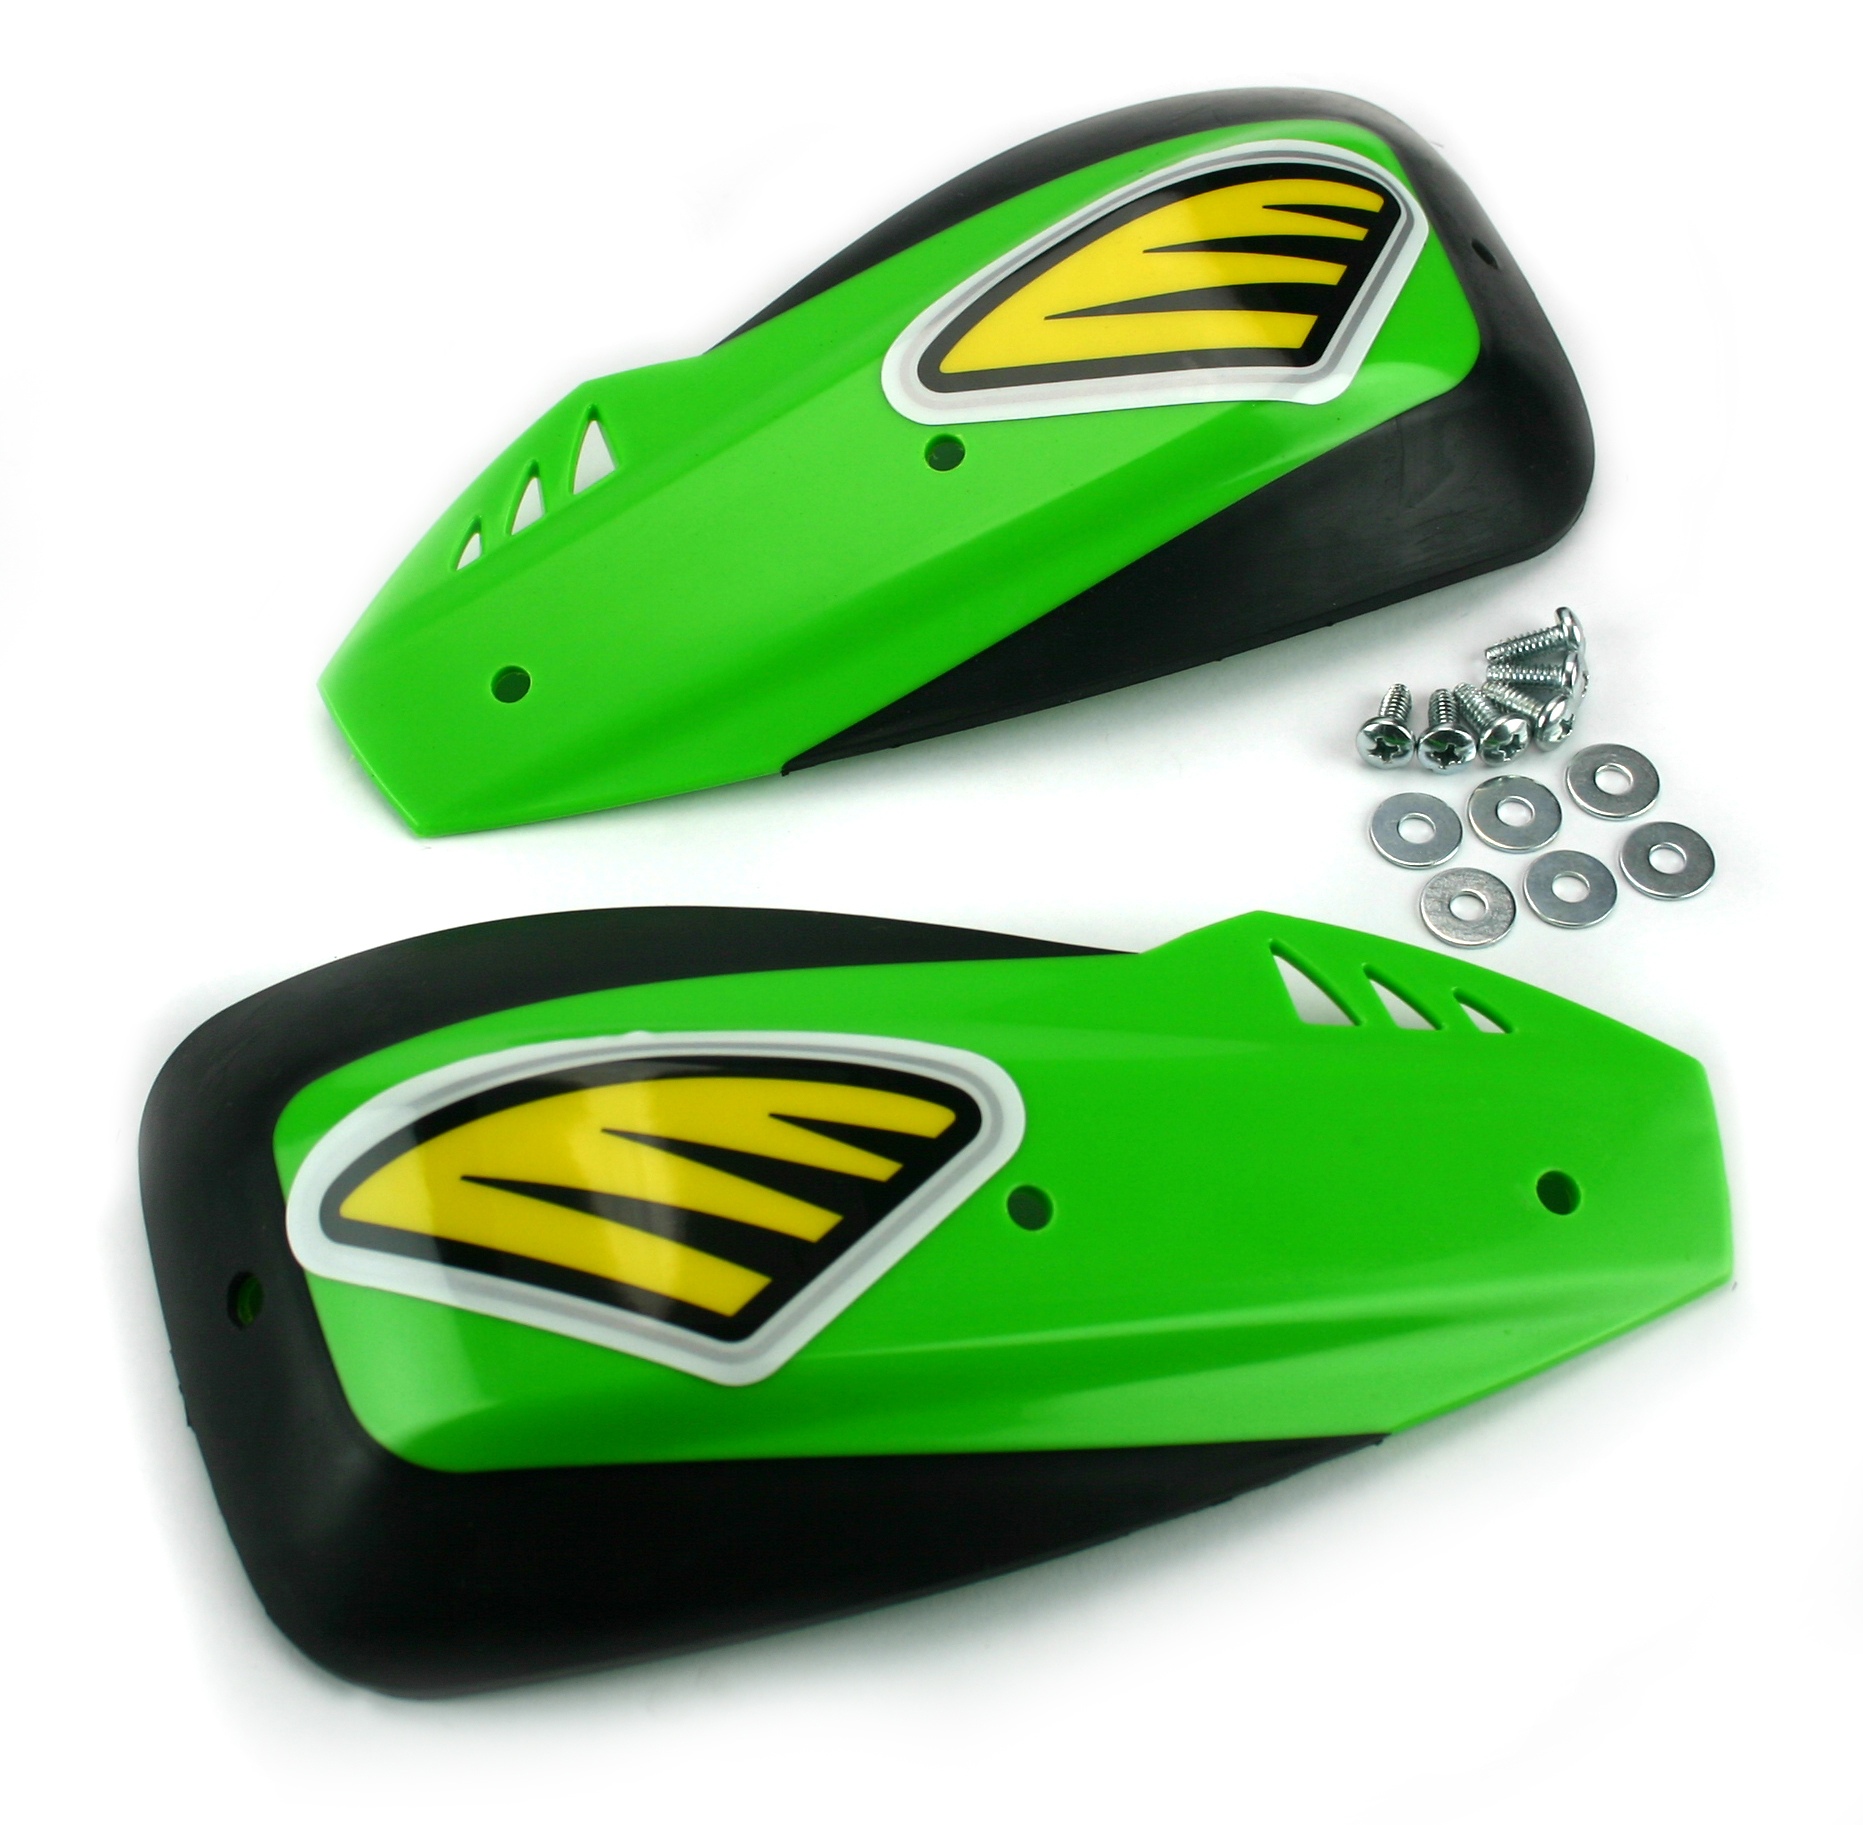 Enduro DX Handshields: Green: For use with alloy handguards